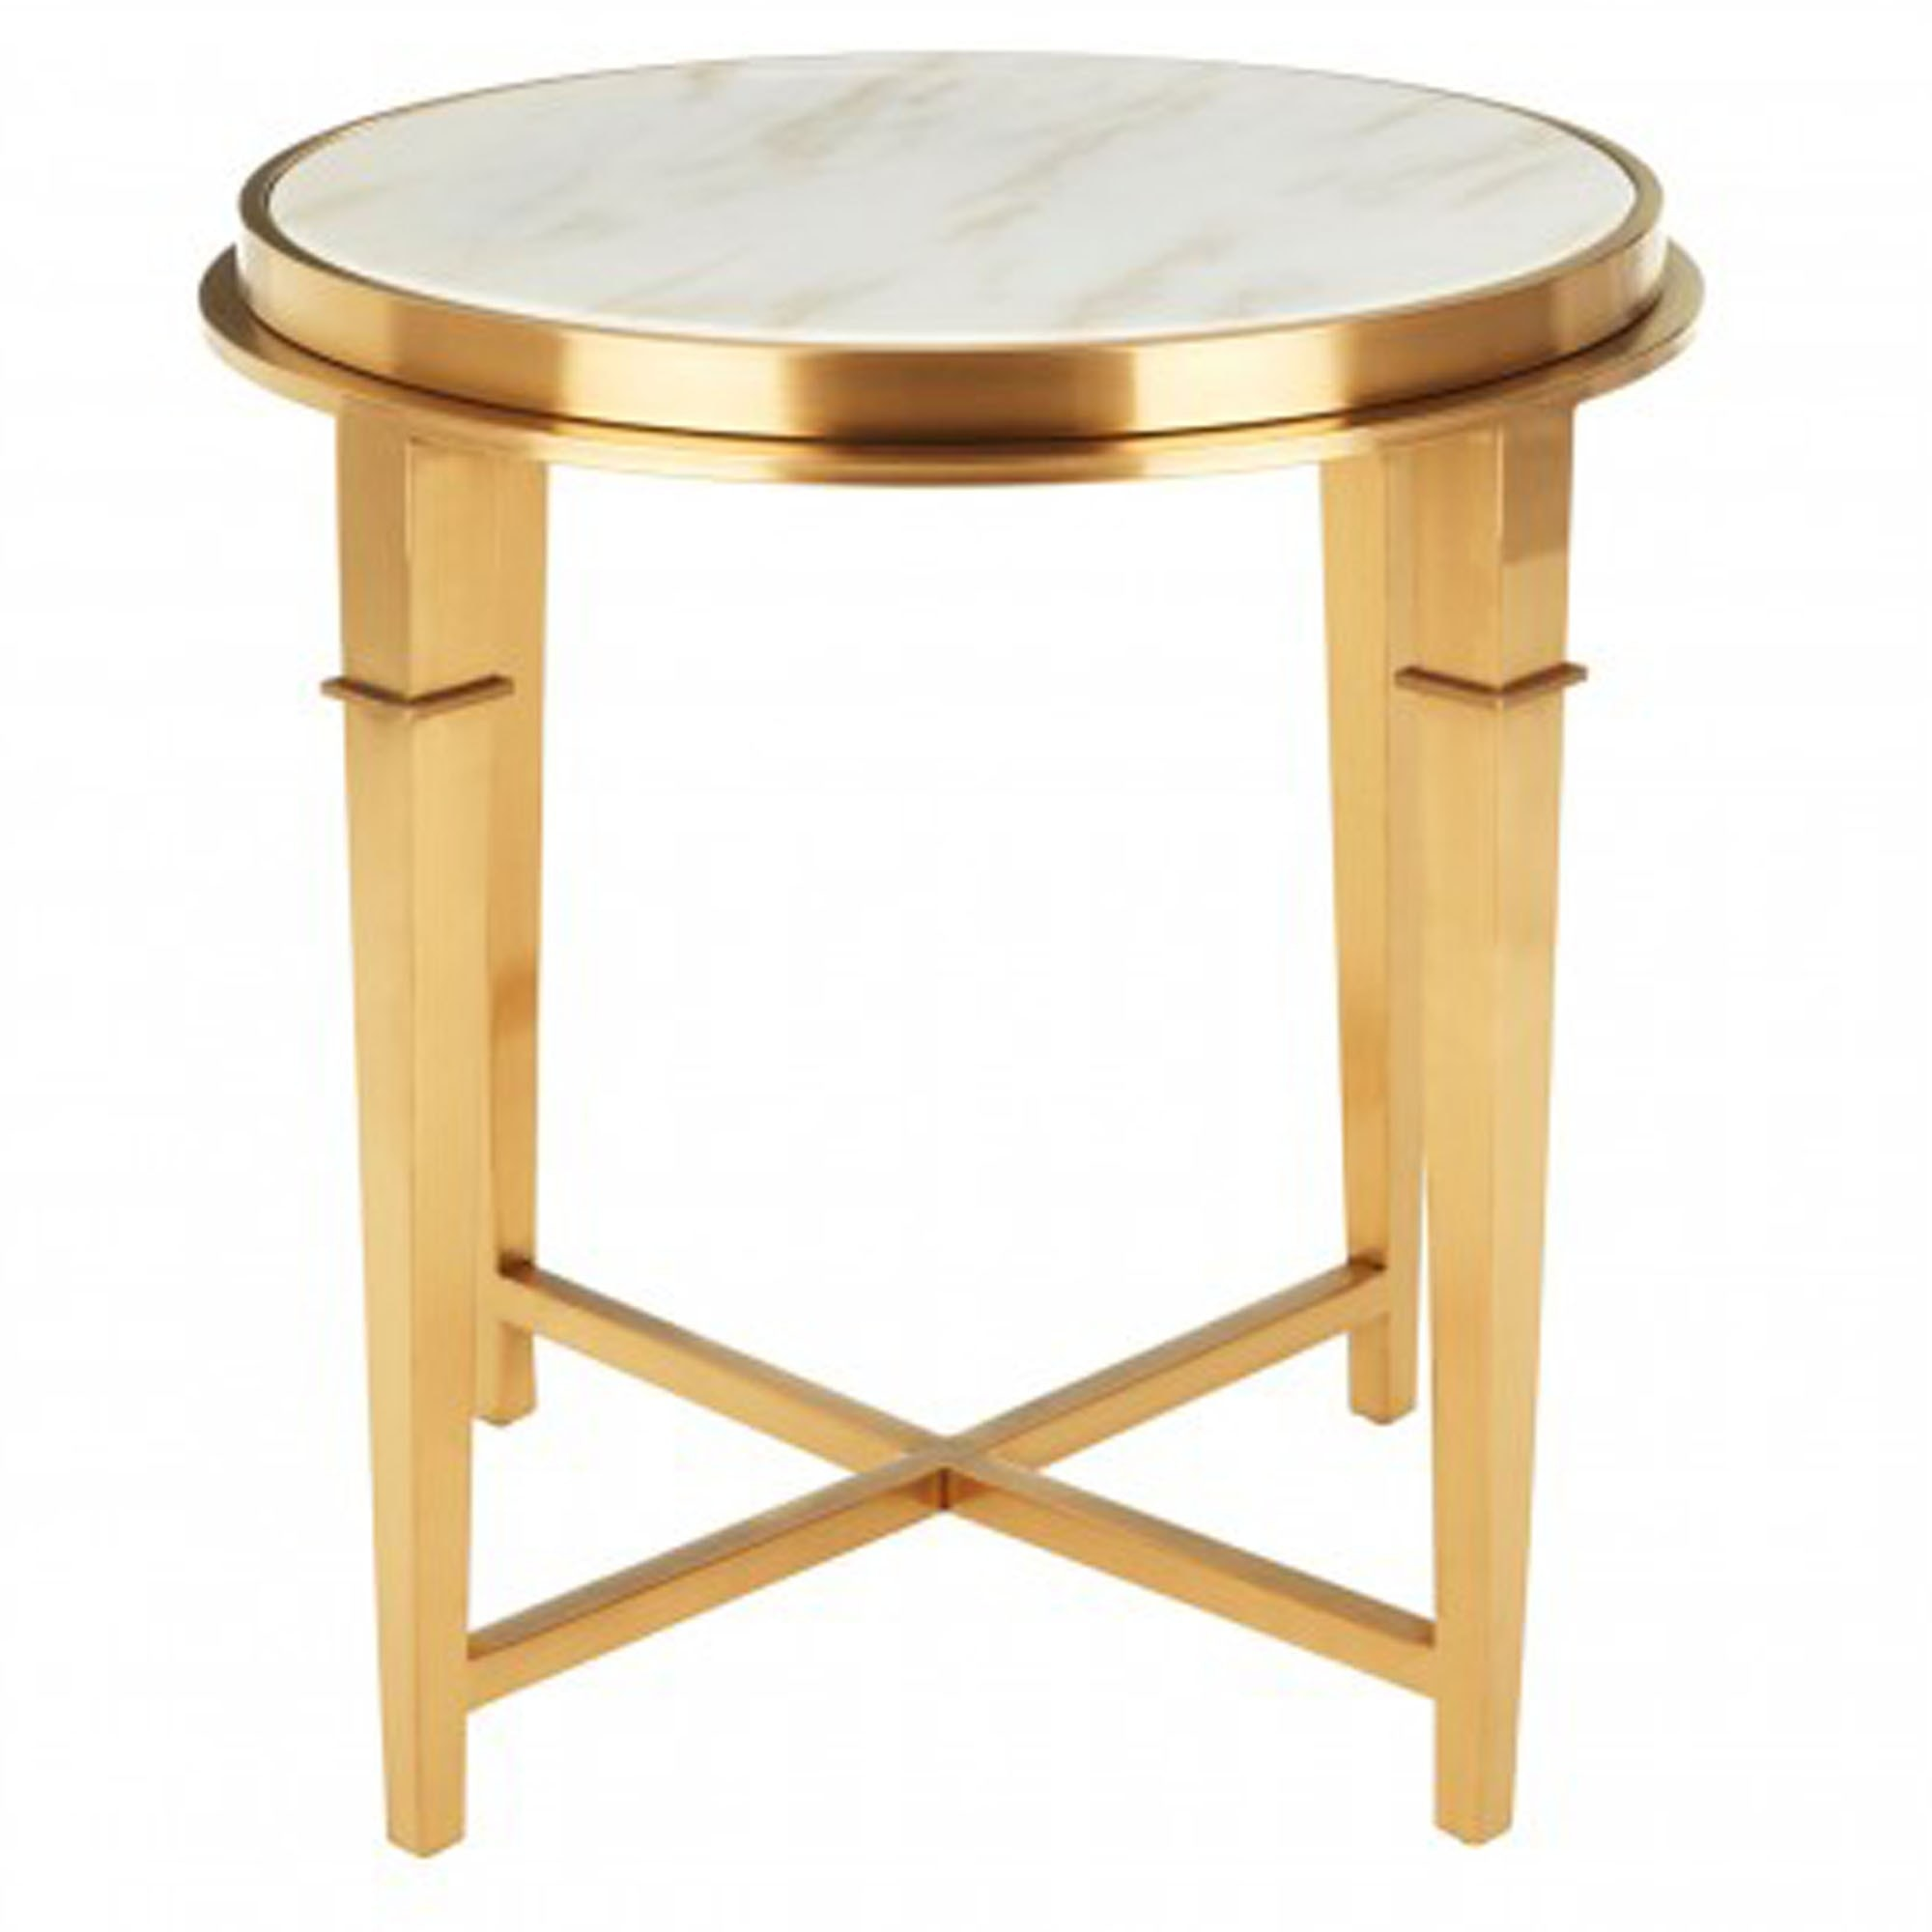 Alvaro Round Gold Finish Side Table Modern Furniture Side Tables